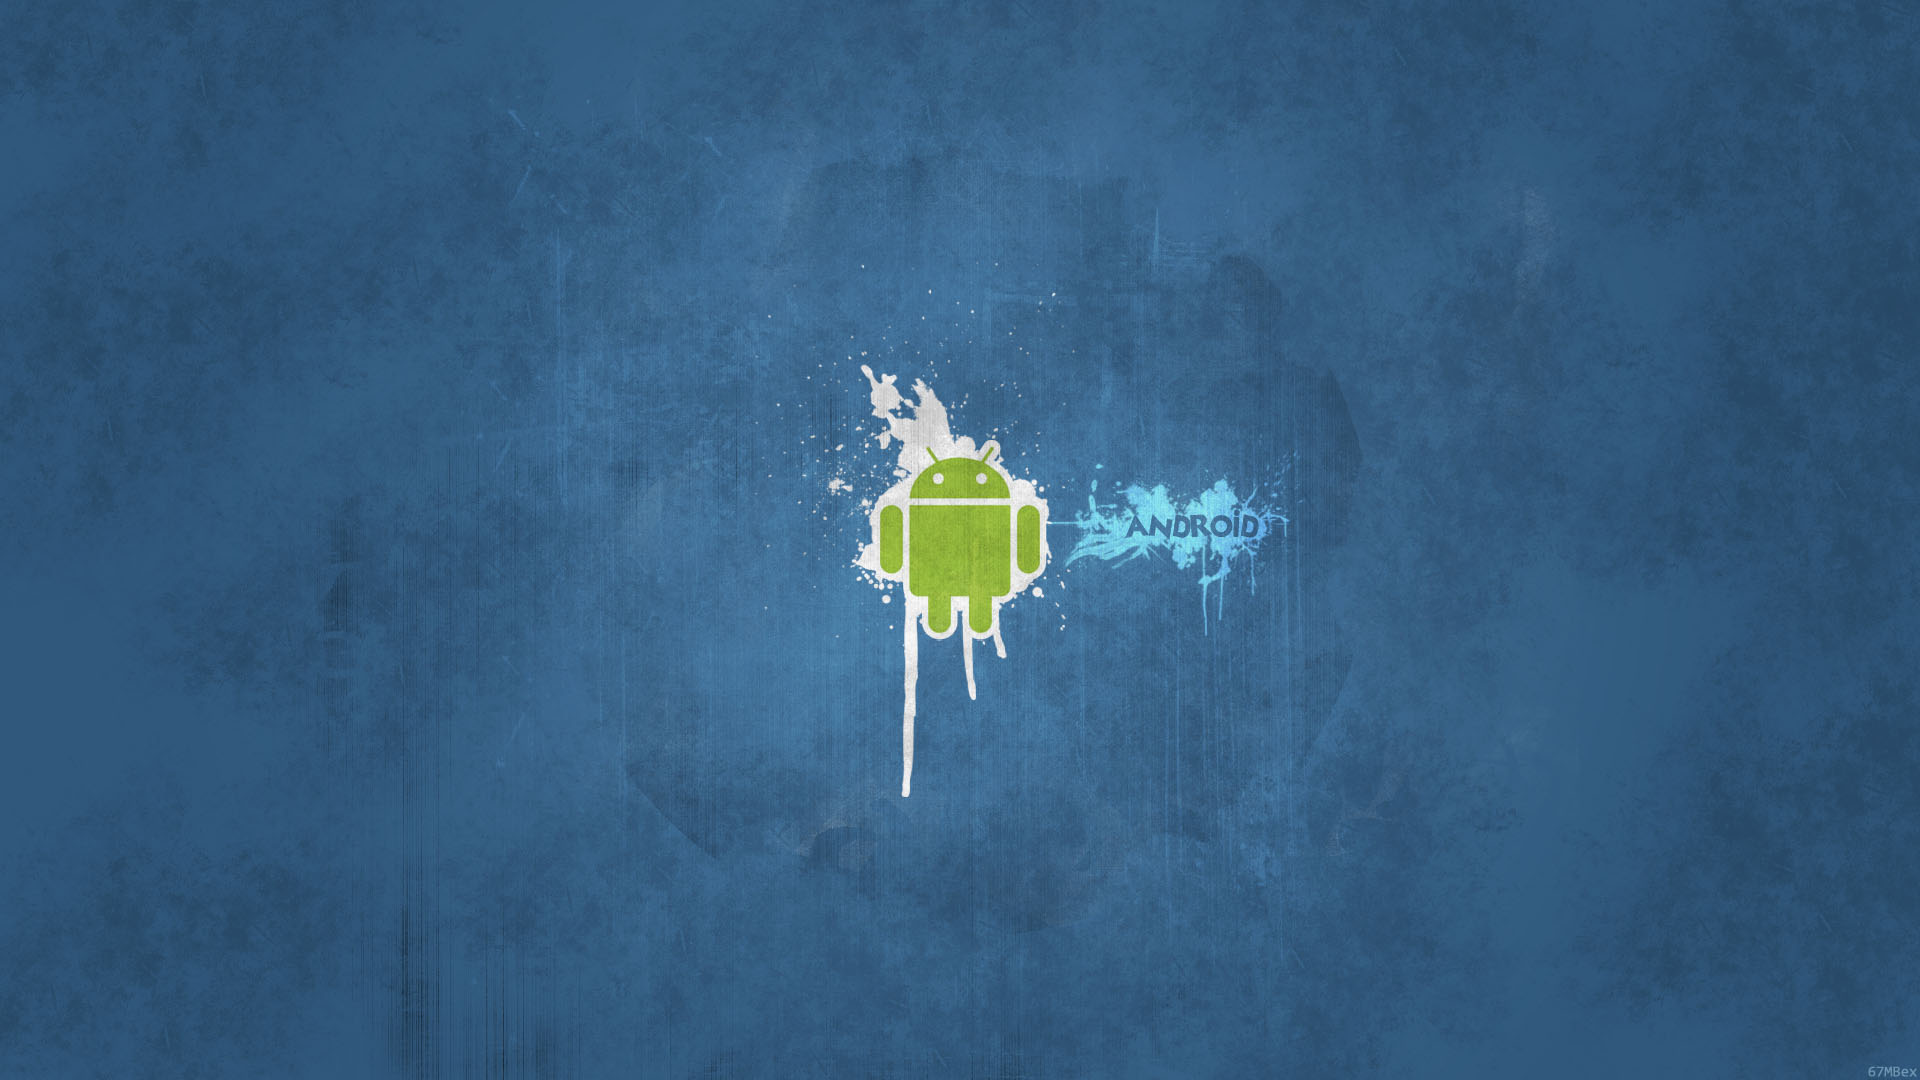 Android Blue Wallpaper 1080p